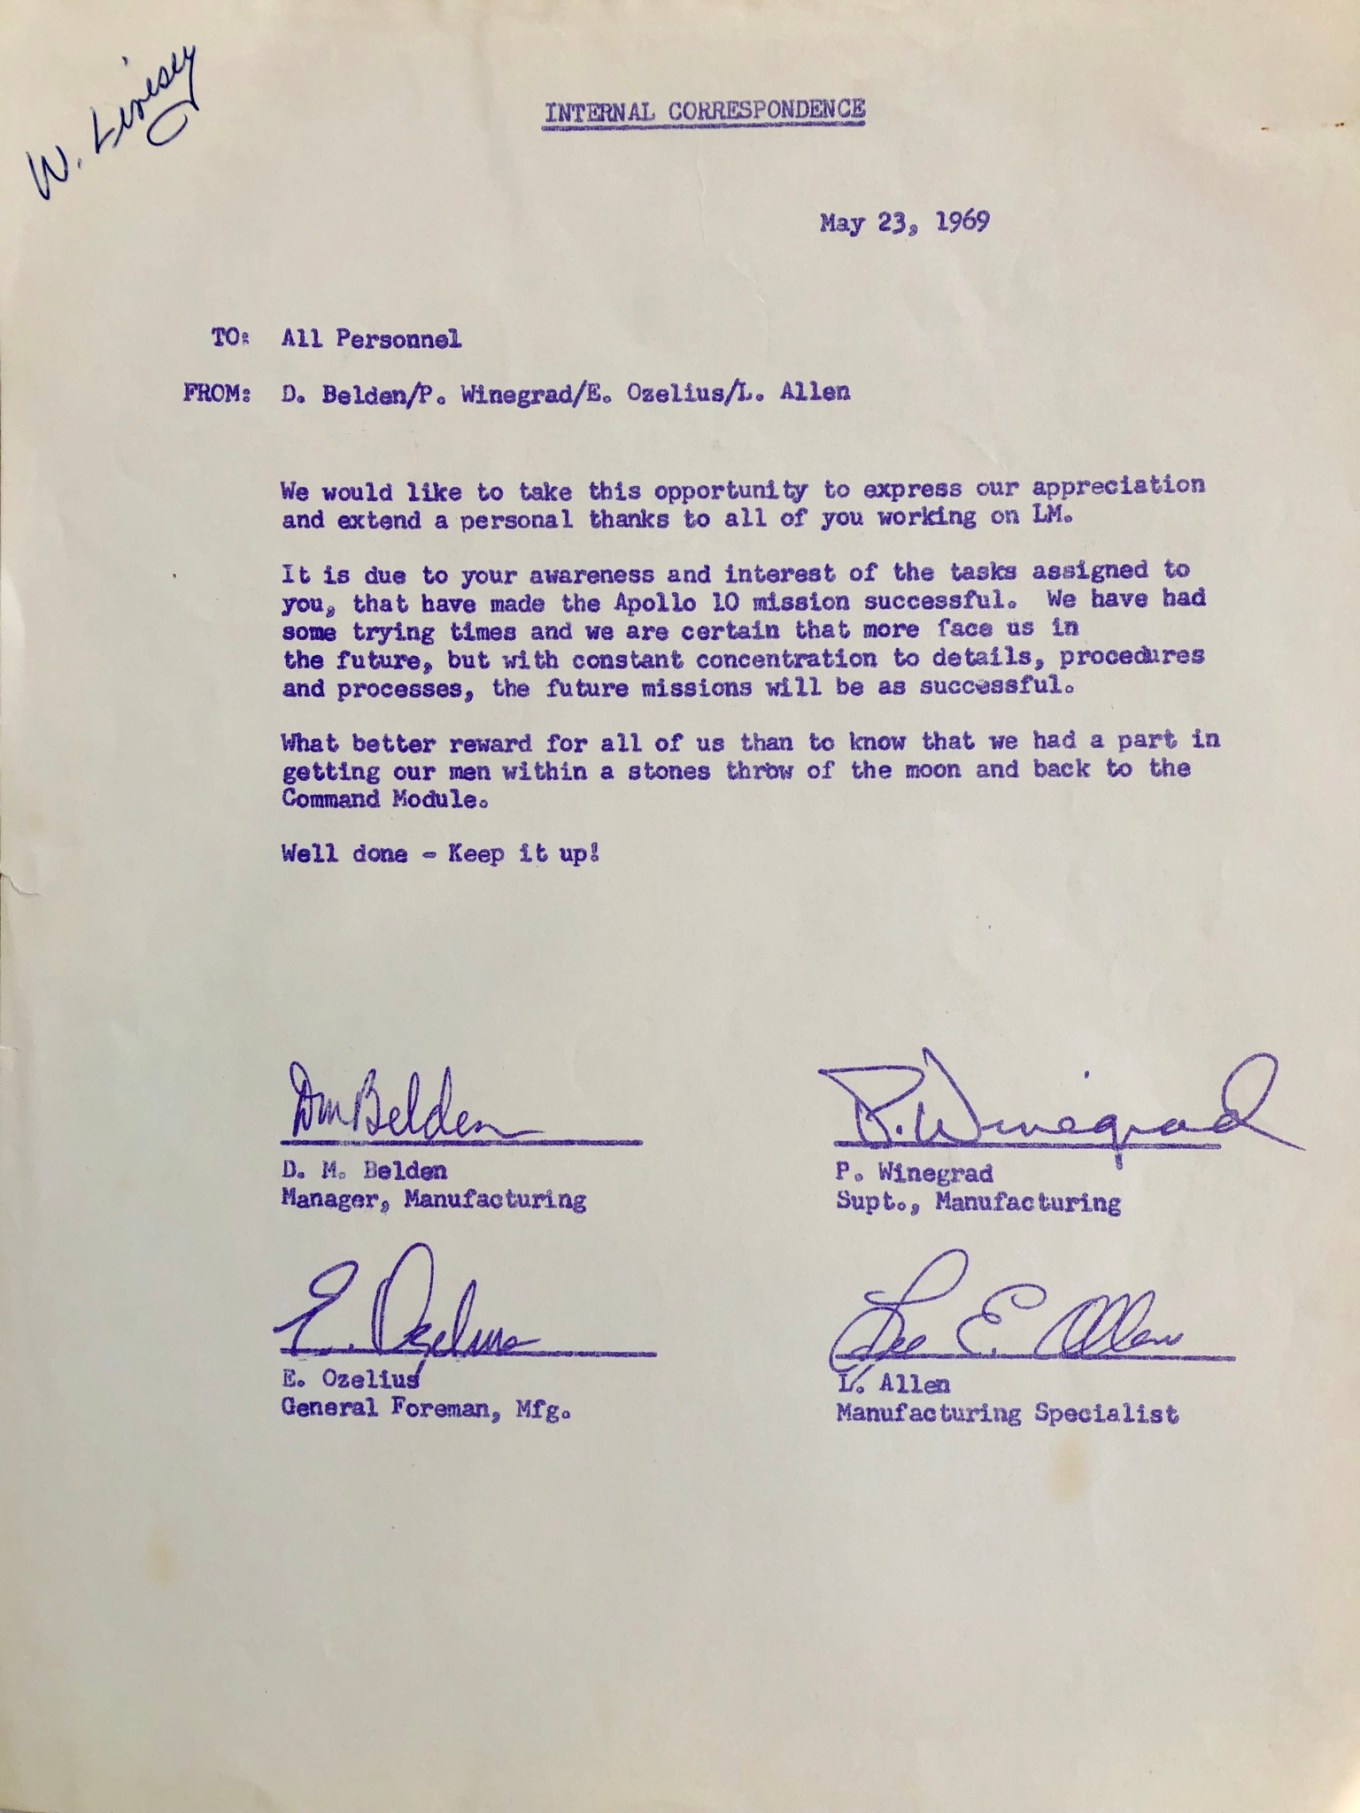 May 23, 1969 internal note